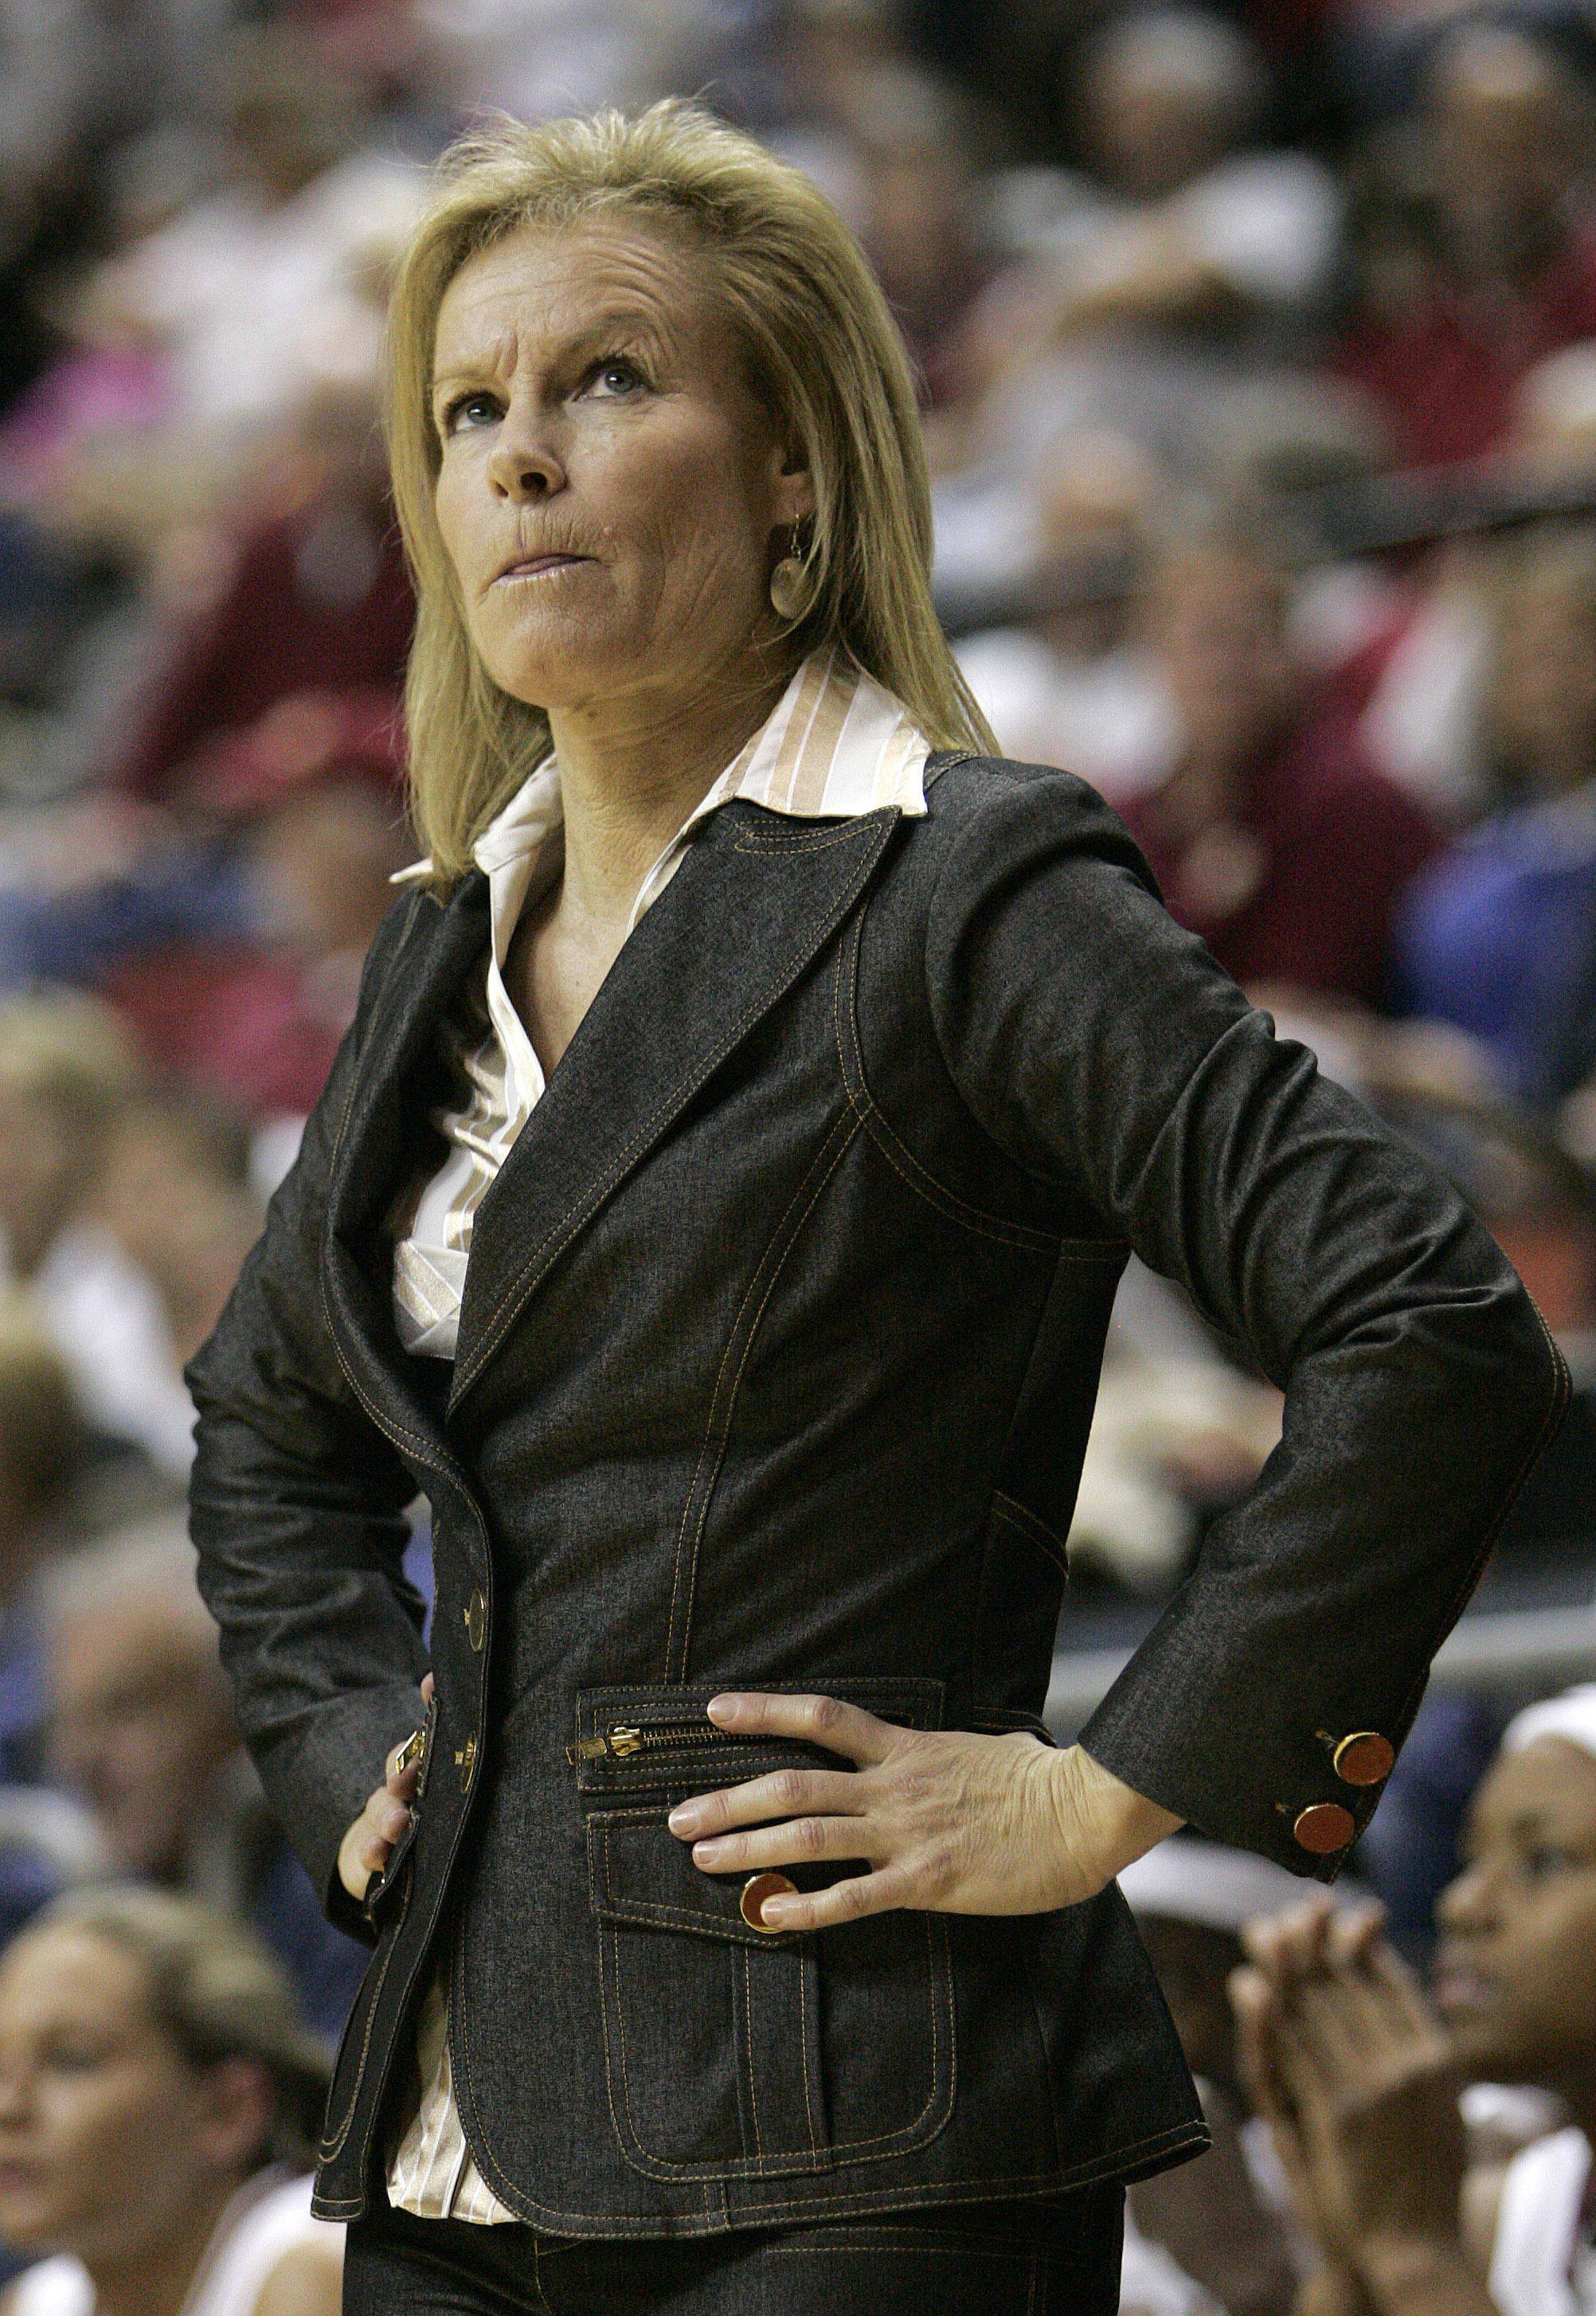 Florida State head coach Sue Semrau looks toward the scoreboard in the second half of an NCAA college basketball game against Maryland on Monday, Jan. 2, 2012 in Tallahassee, Fla. Maryland won 91-70. (AP Photo/Steve Cannon)